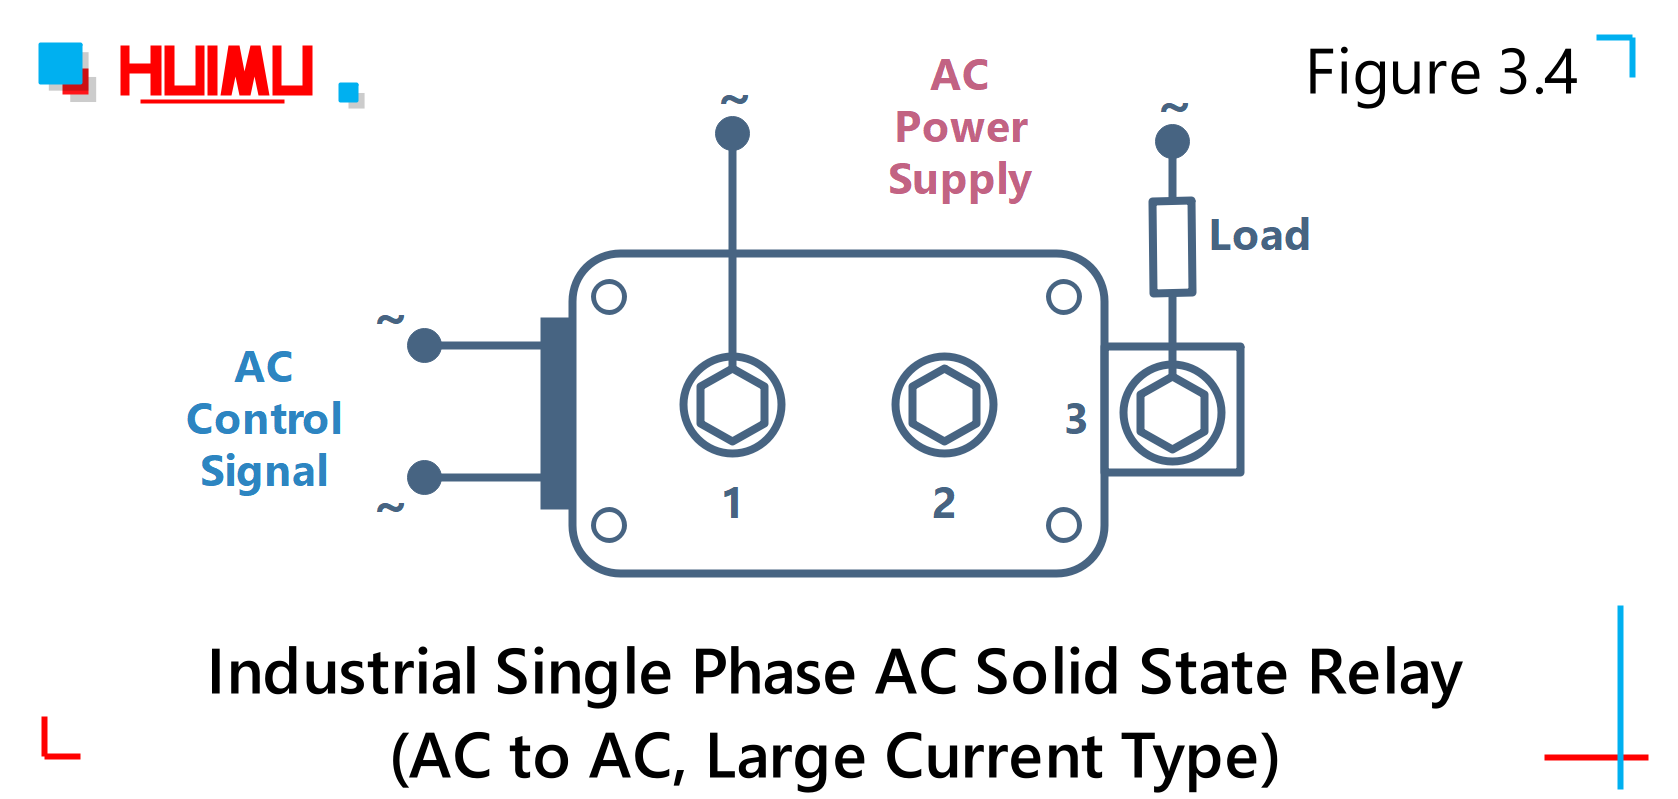 industrial three phase AC solid state relay (DC to AC) wiring diagram and circuit diagram Type 4